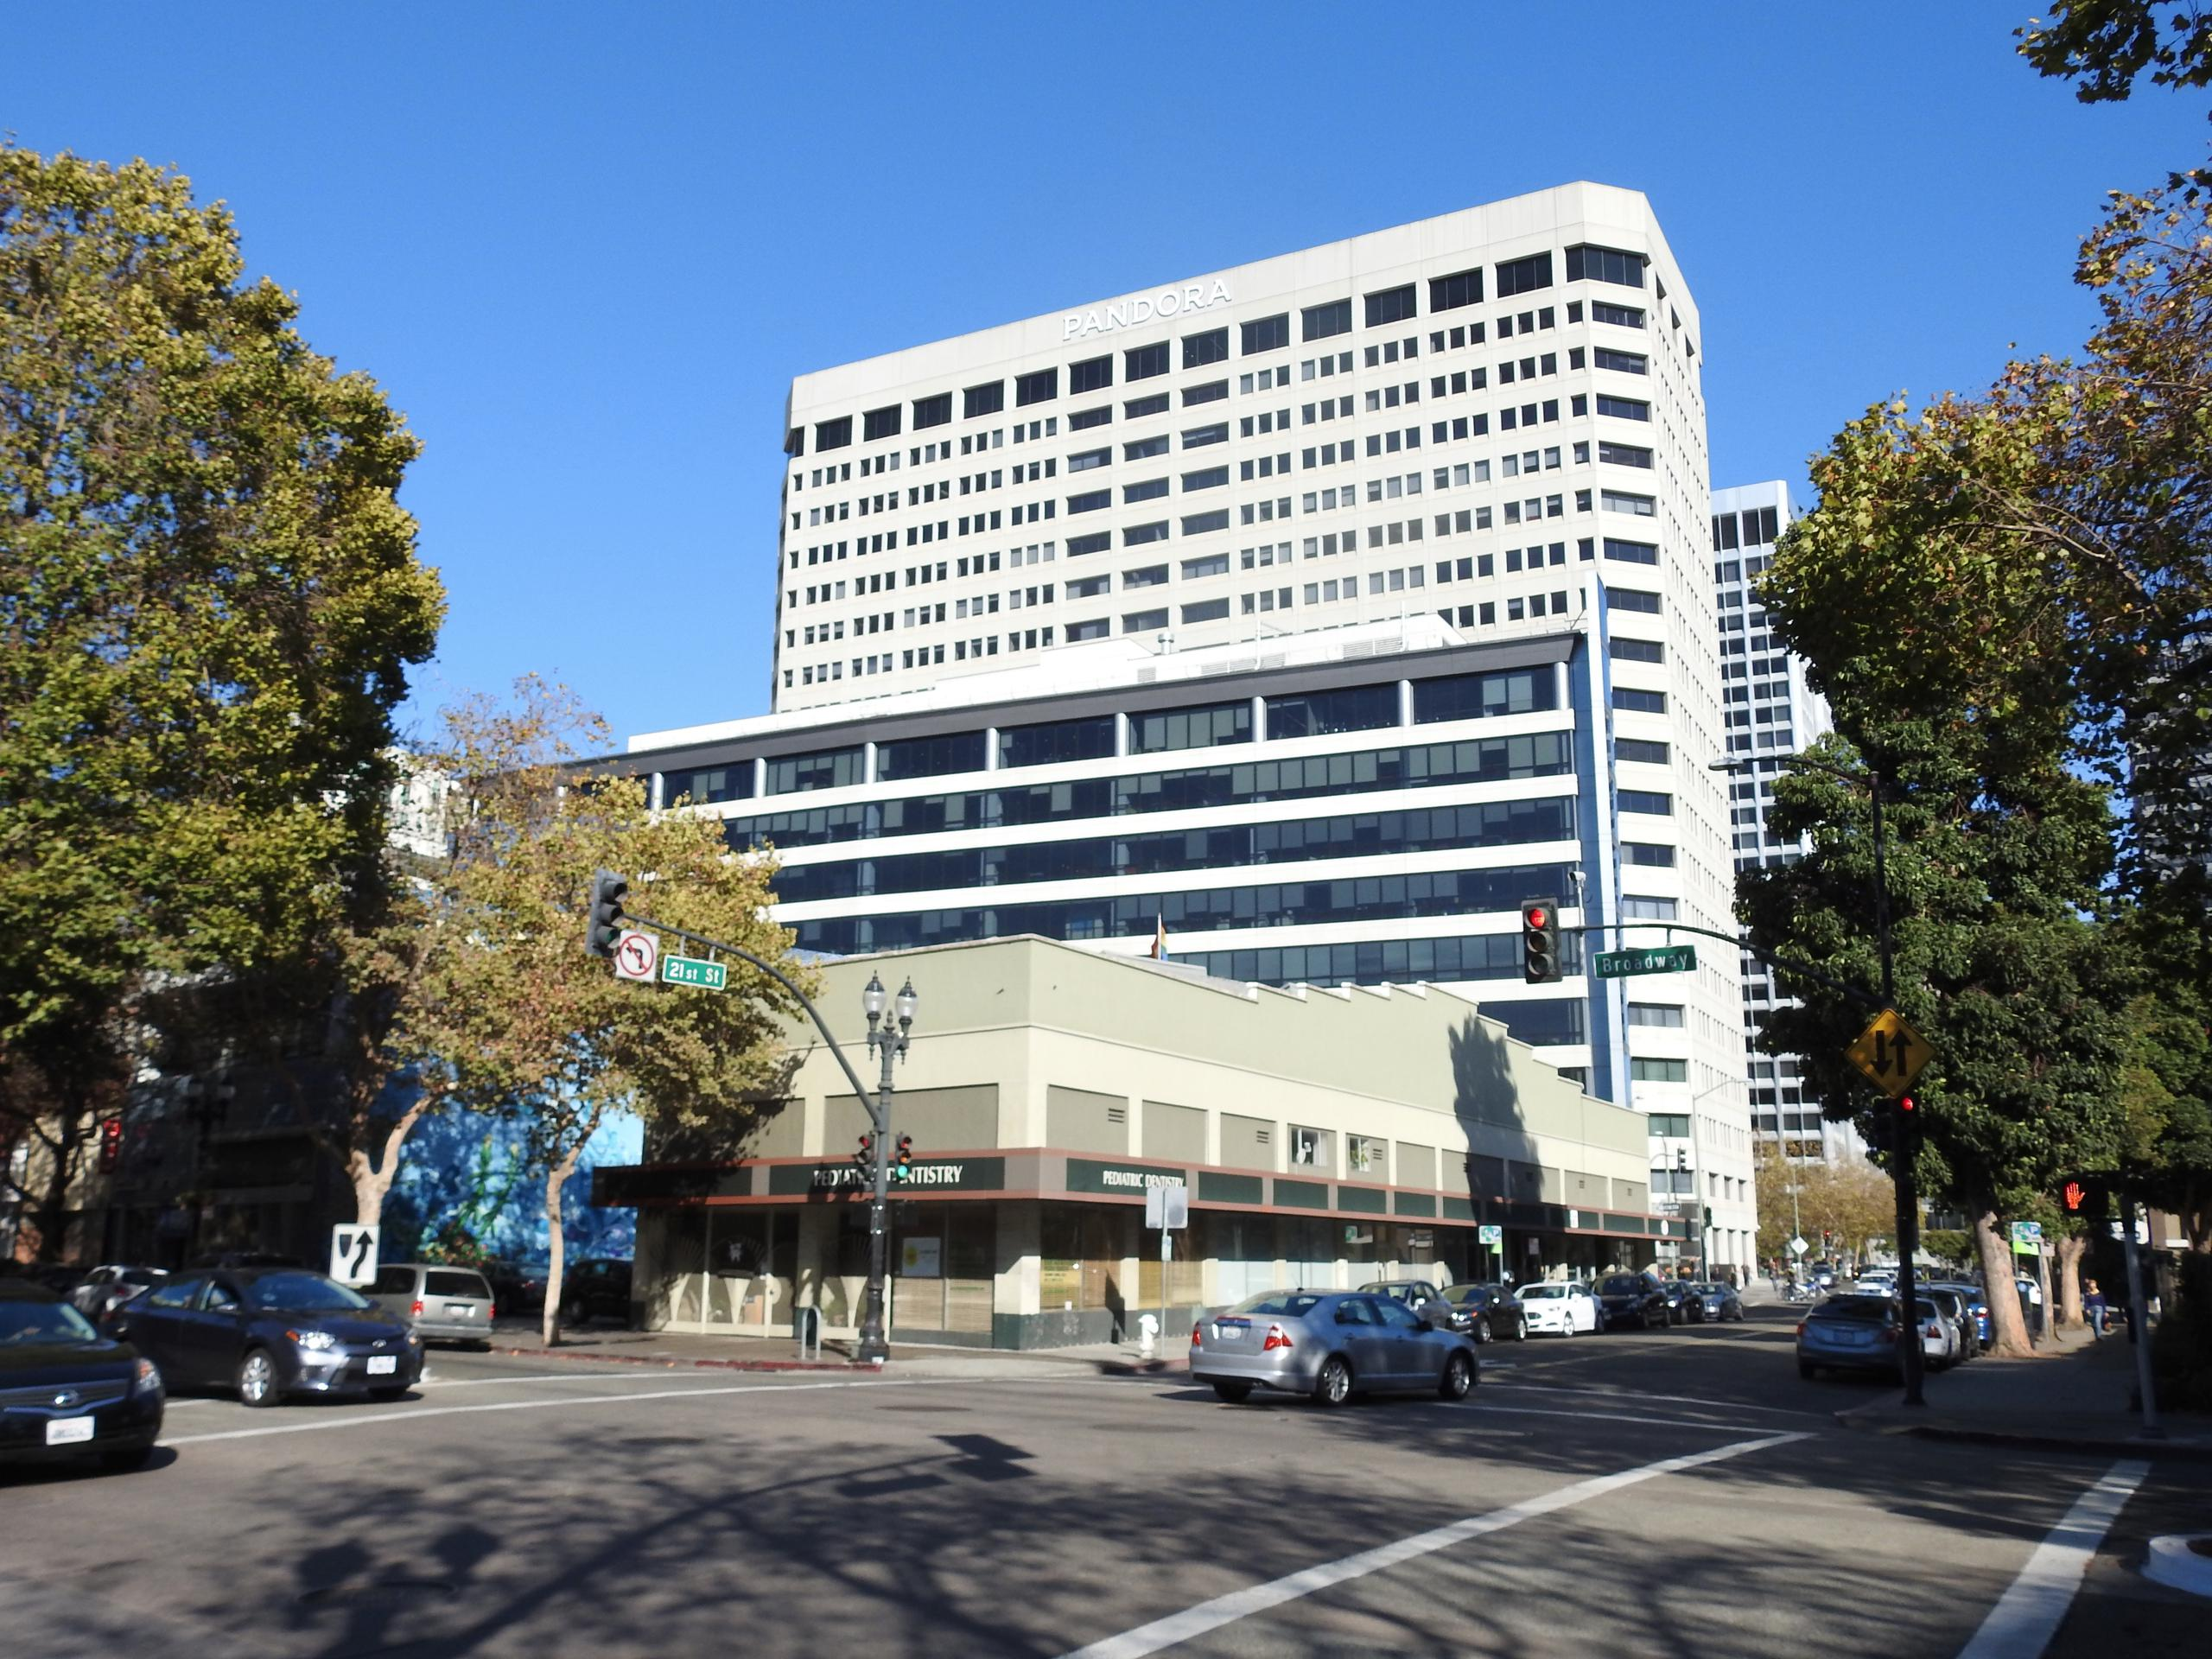 Pandora's headquarters in downtown Oakland, California.